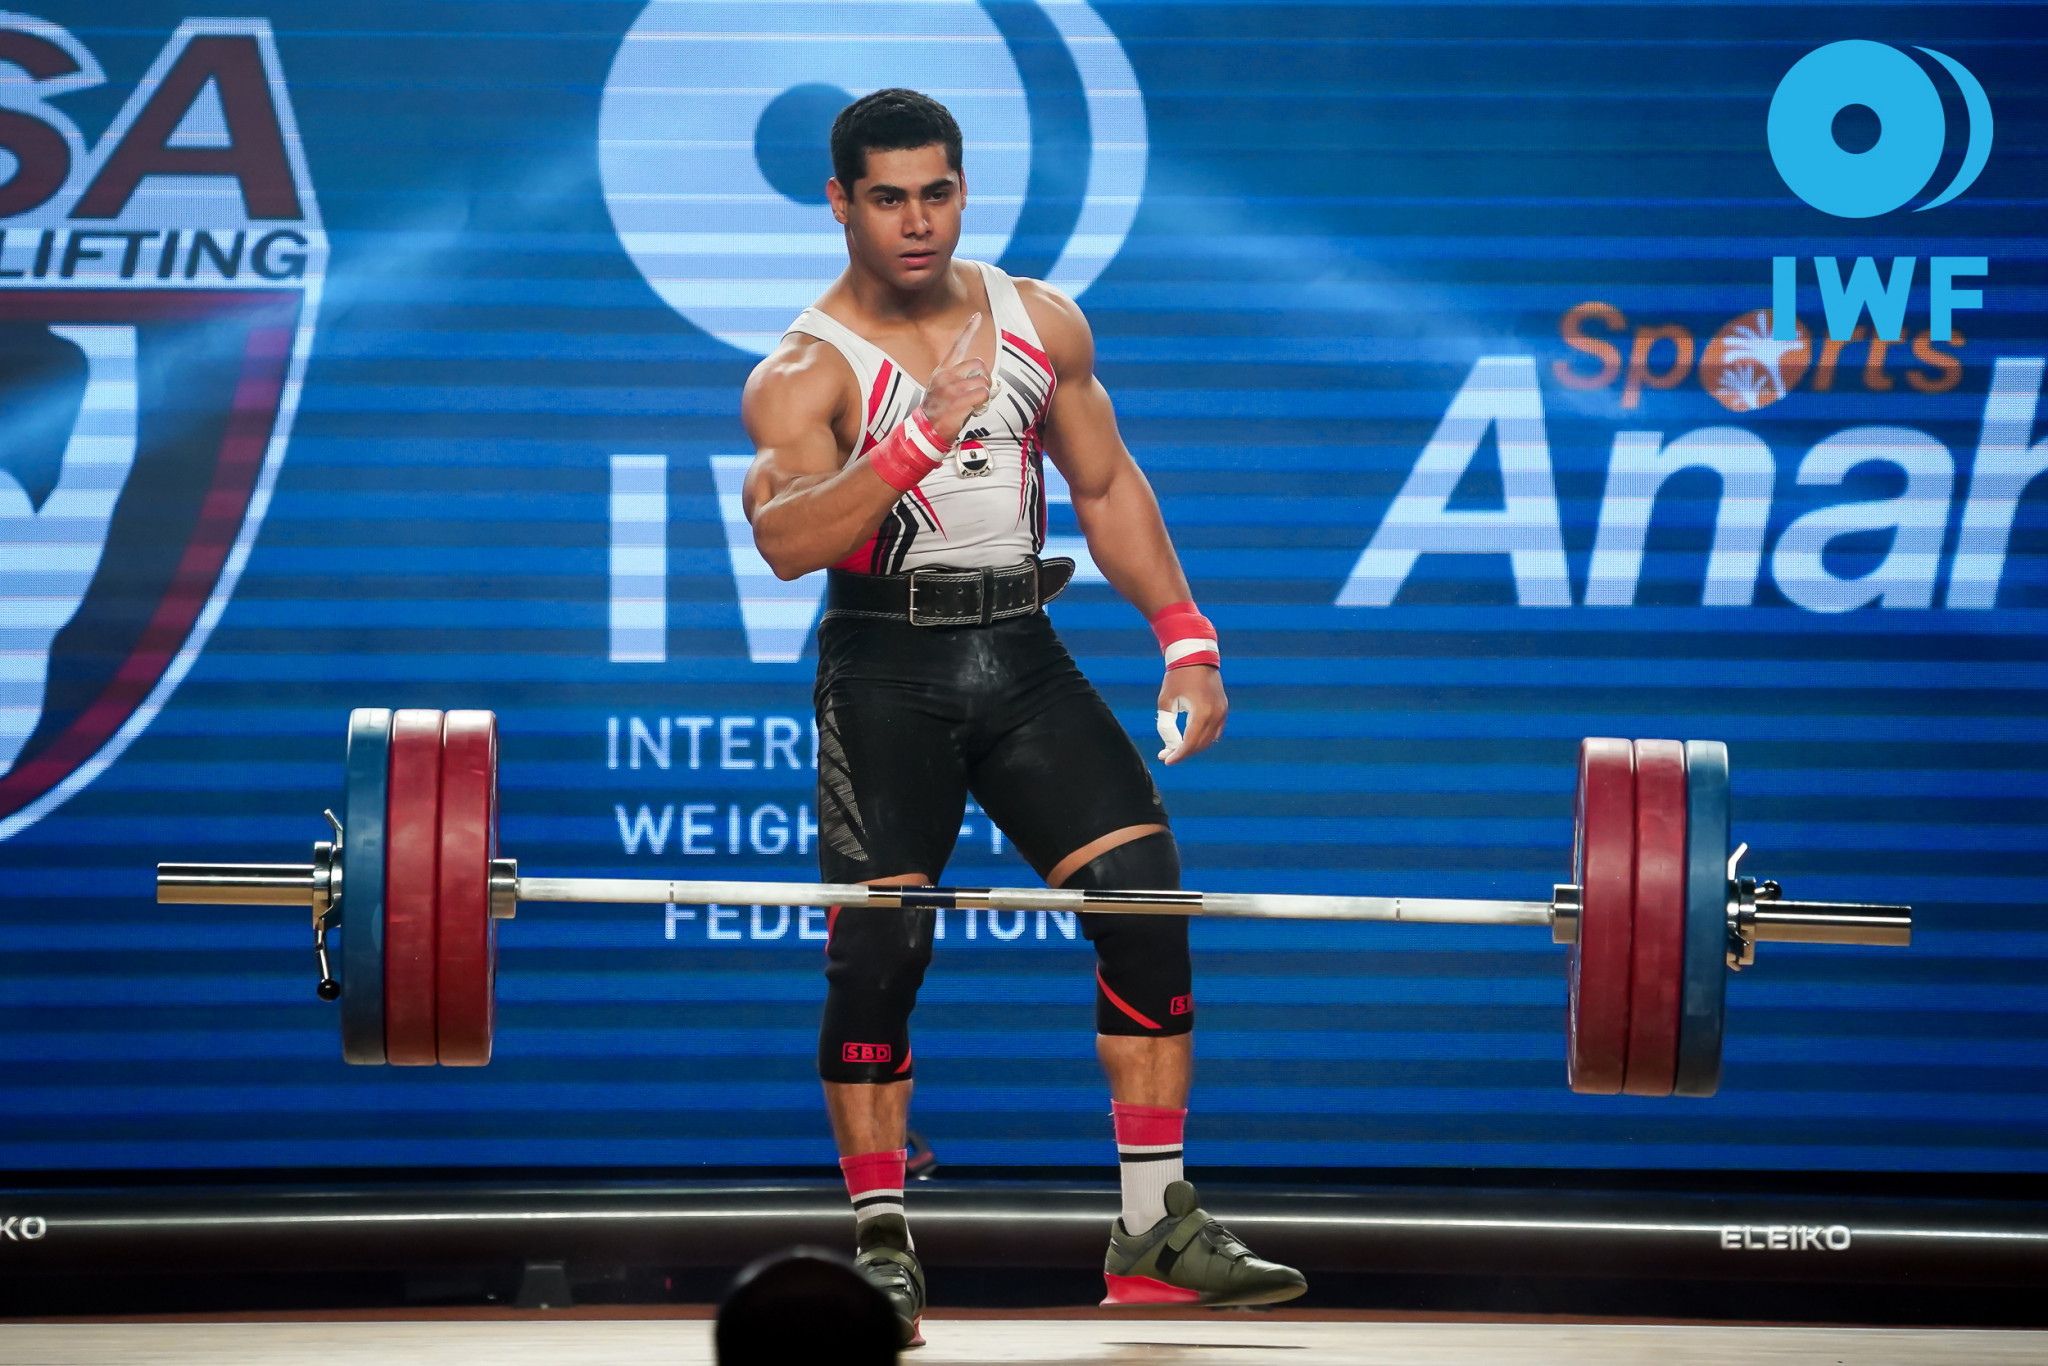 World champion Mohamed Ehab is one of the world's most popular weightlifters but could have to miss the 2020 Olympics in Tokyo if Egypt is banned because of doping ©IWF